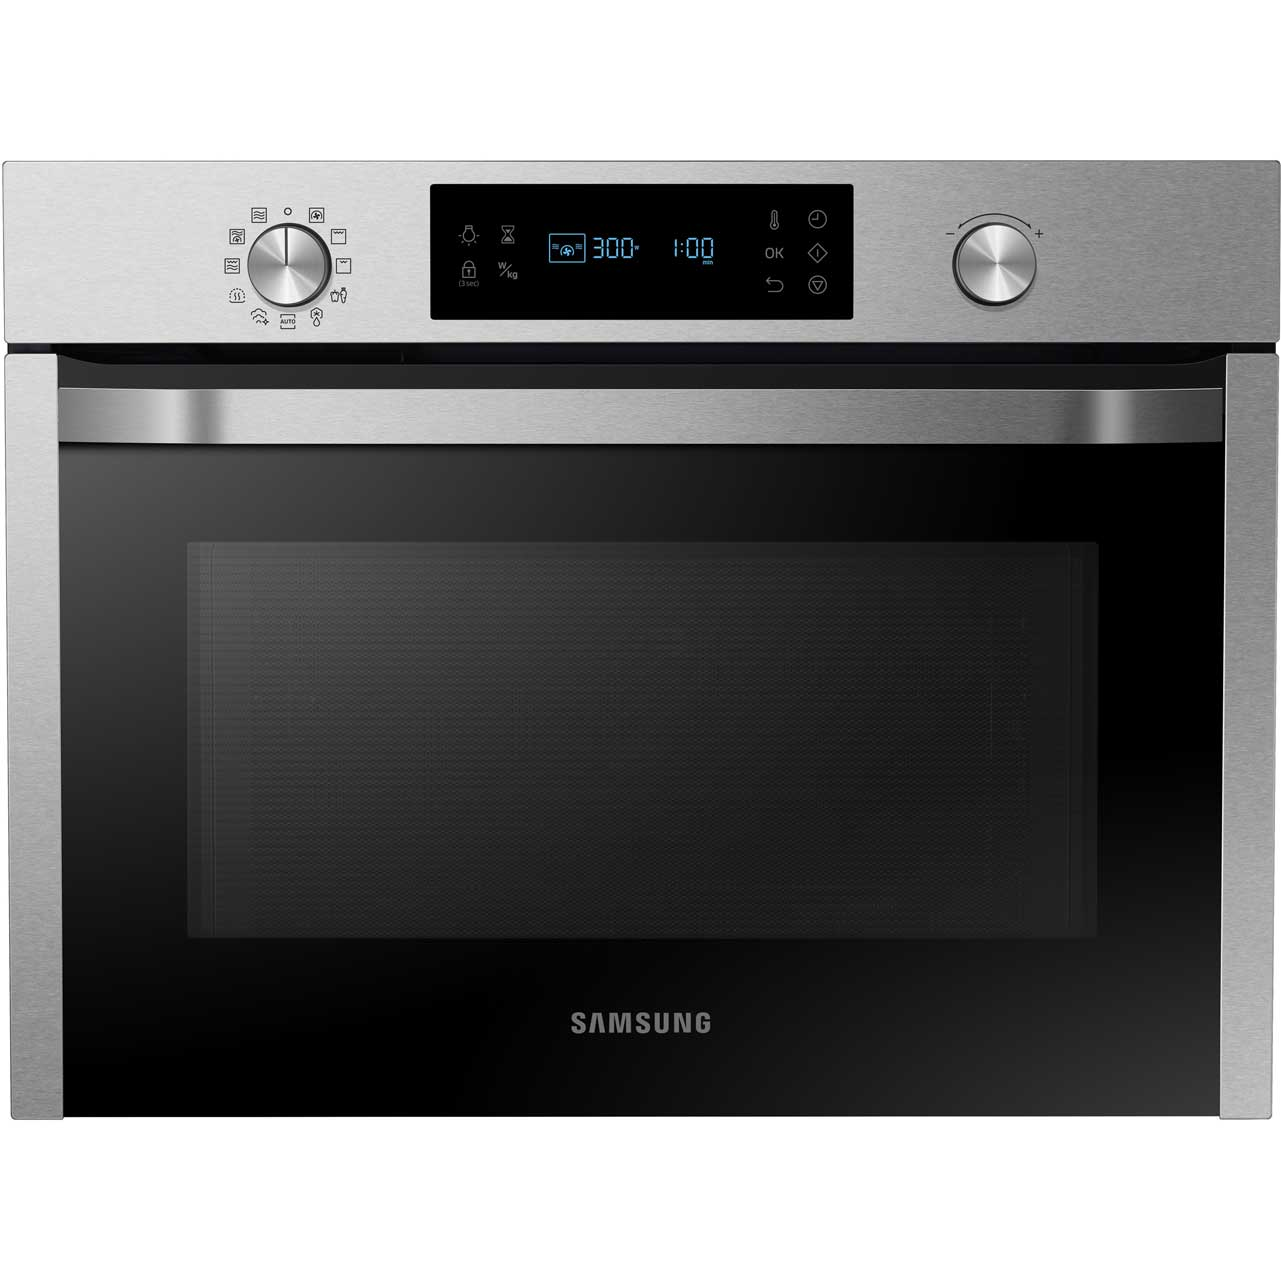 Samsung Nq50j3530bs Built In Combination Microwave Oven